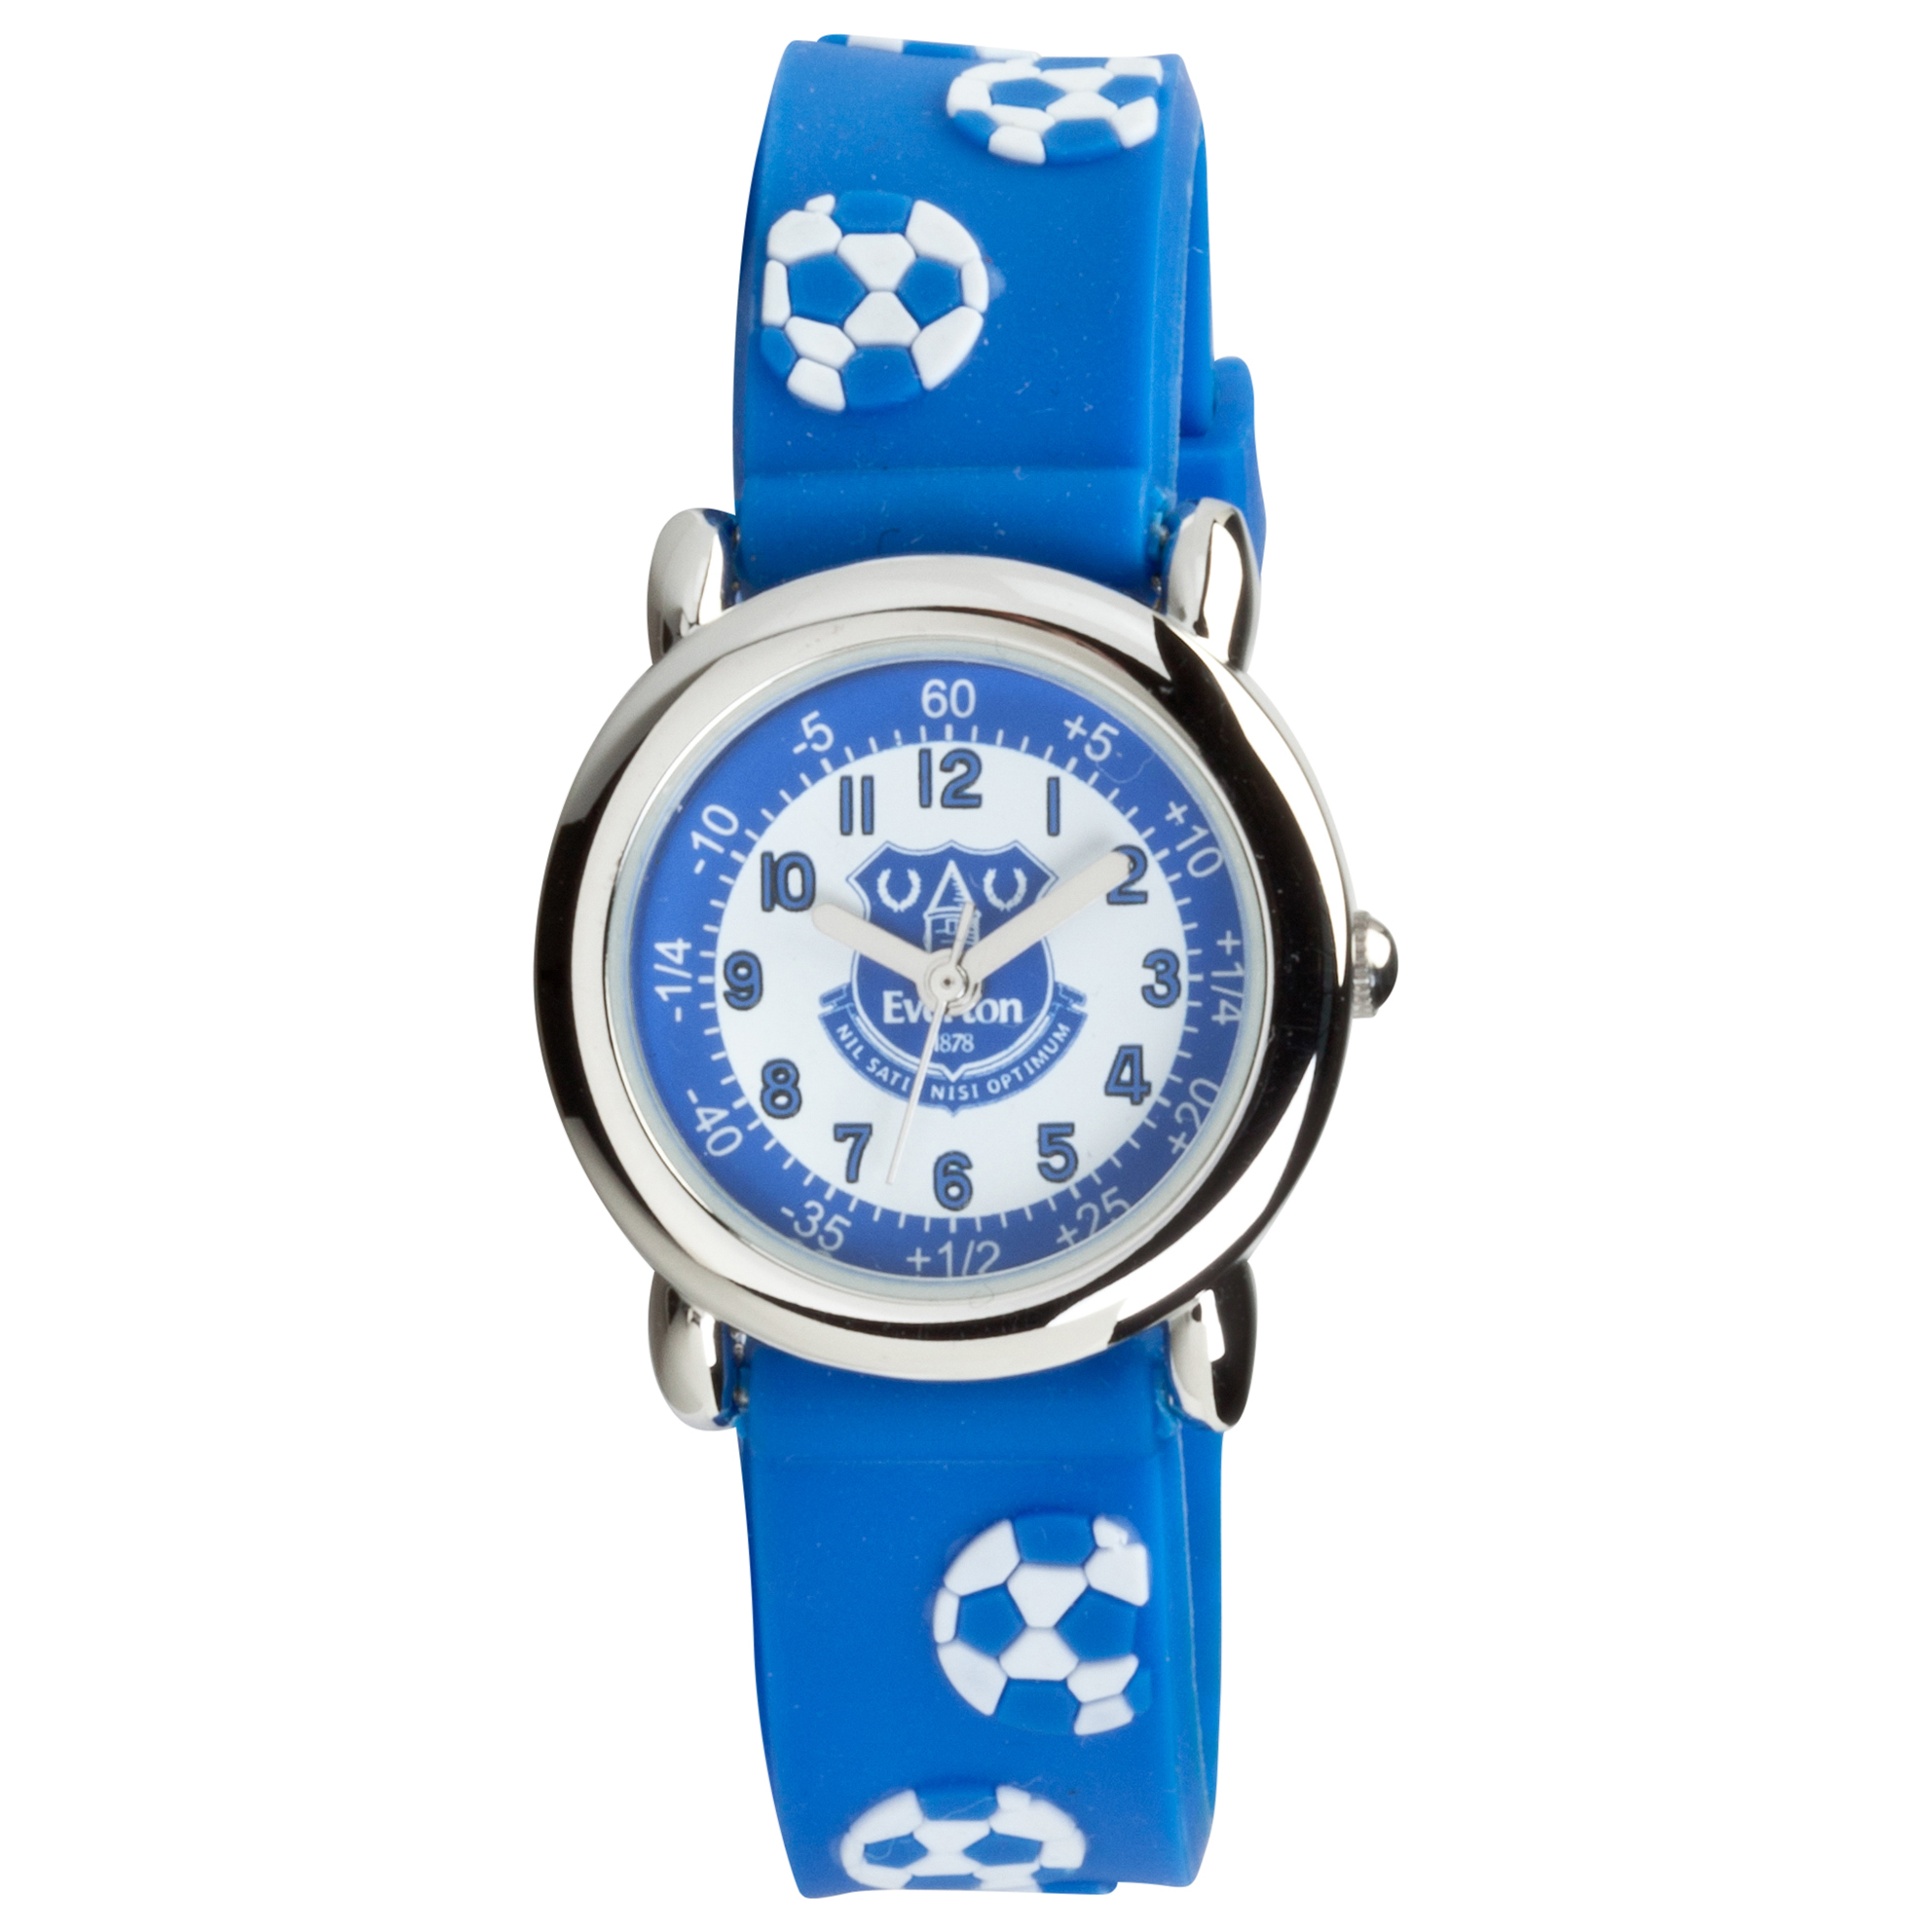 Everton Kids Plastic Watch